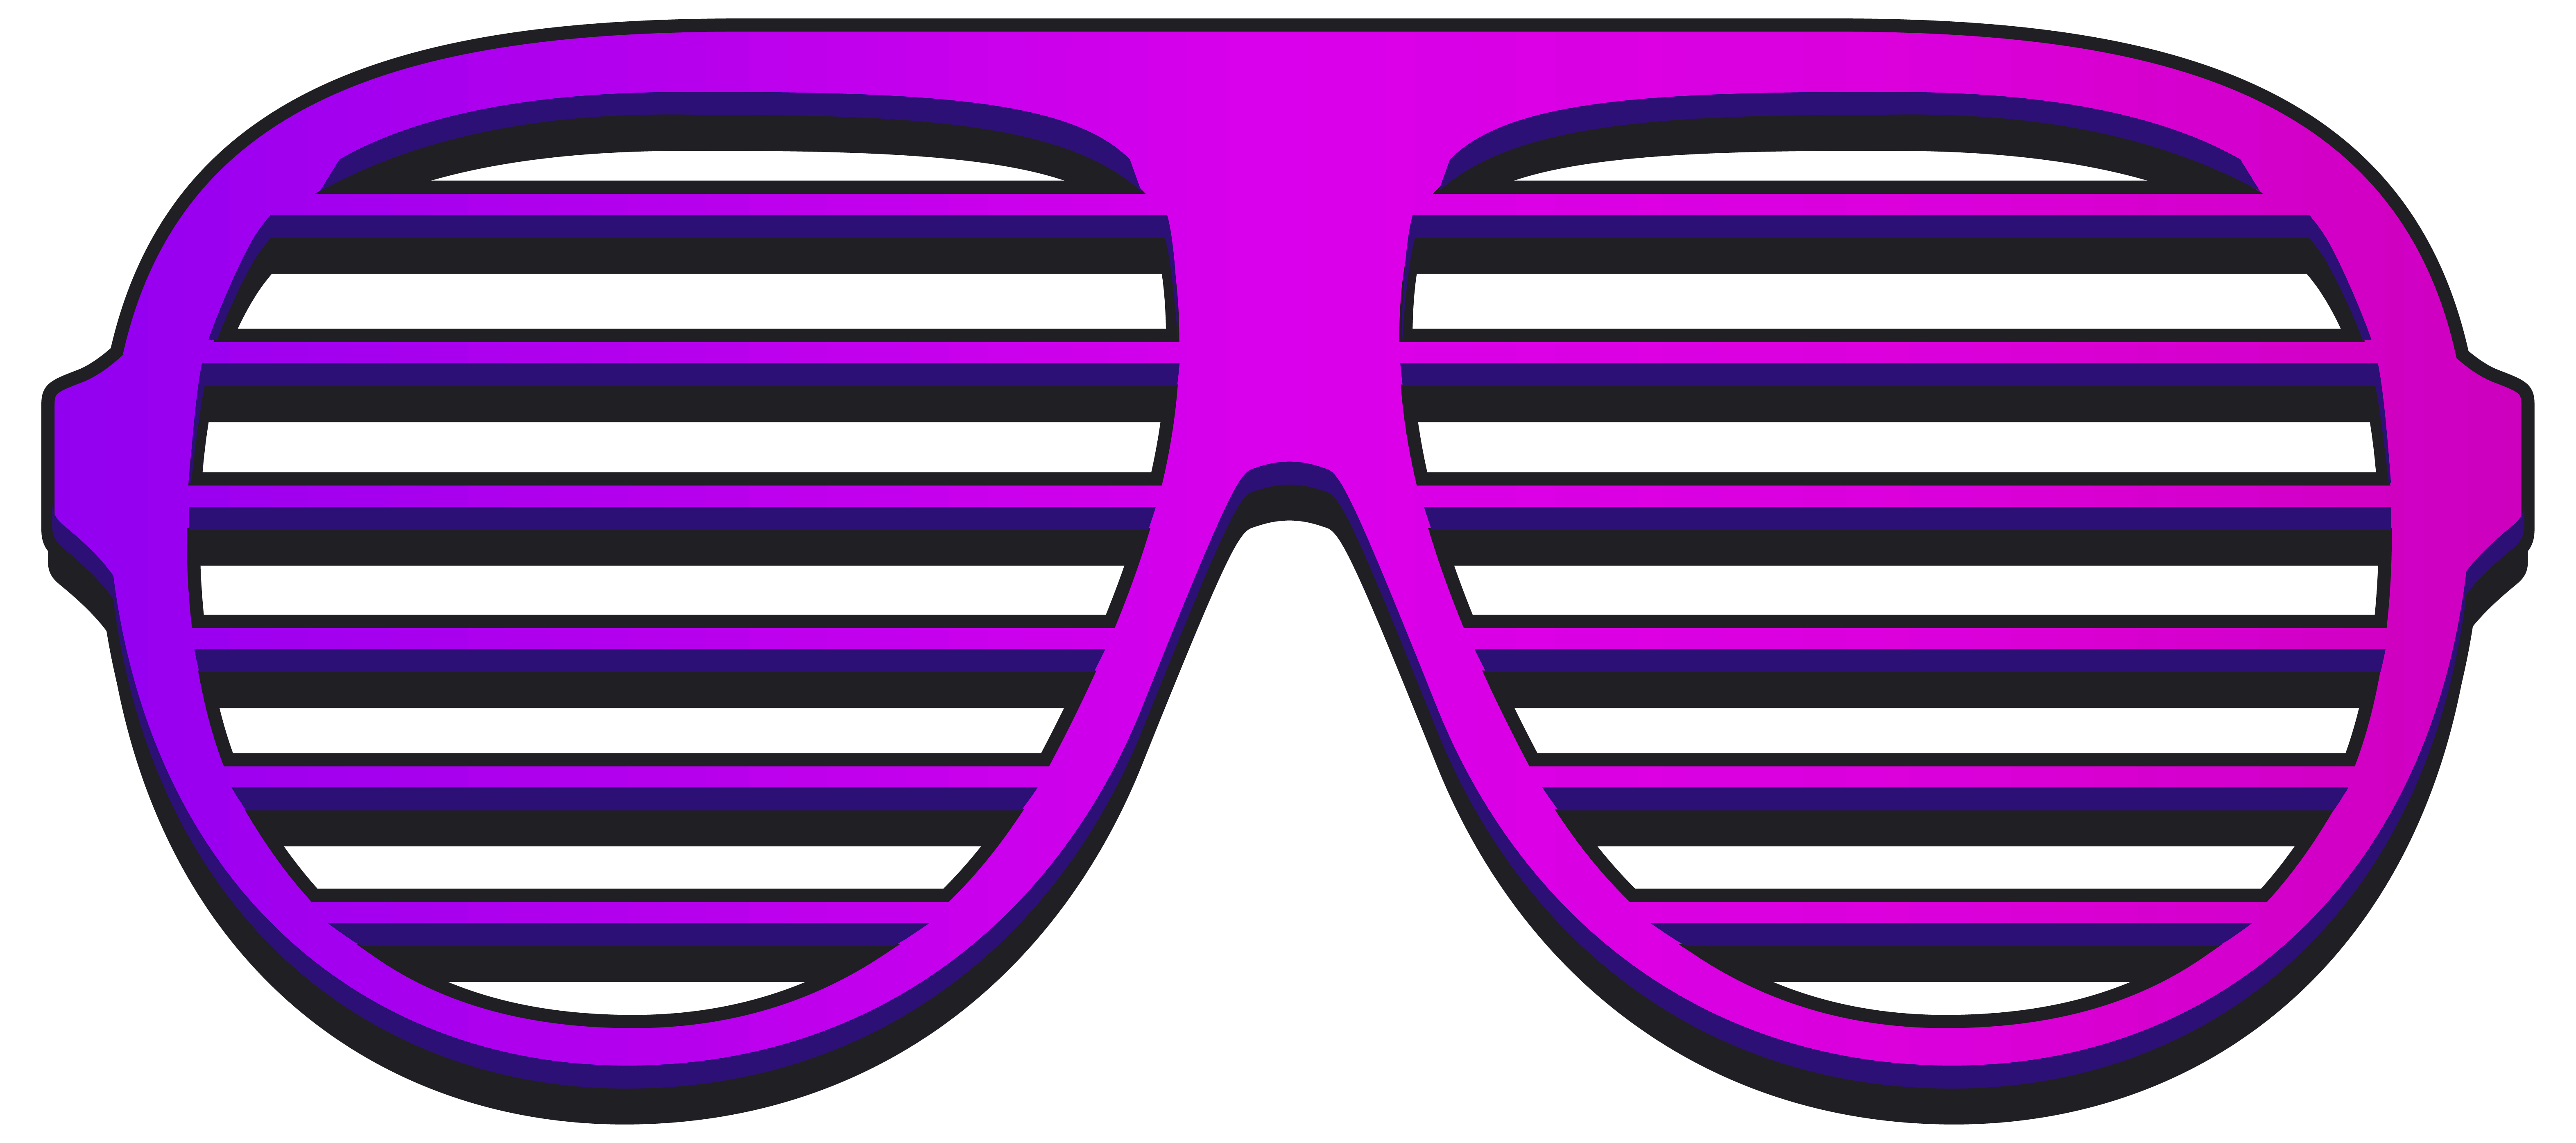 Download Shutter Sunglasses Shades Cool HD Image Free PNG Clipart.